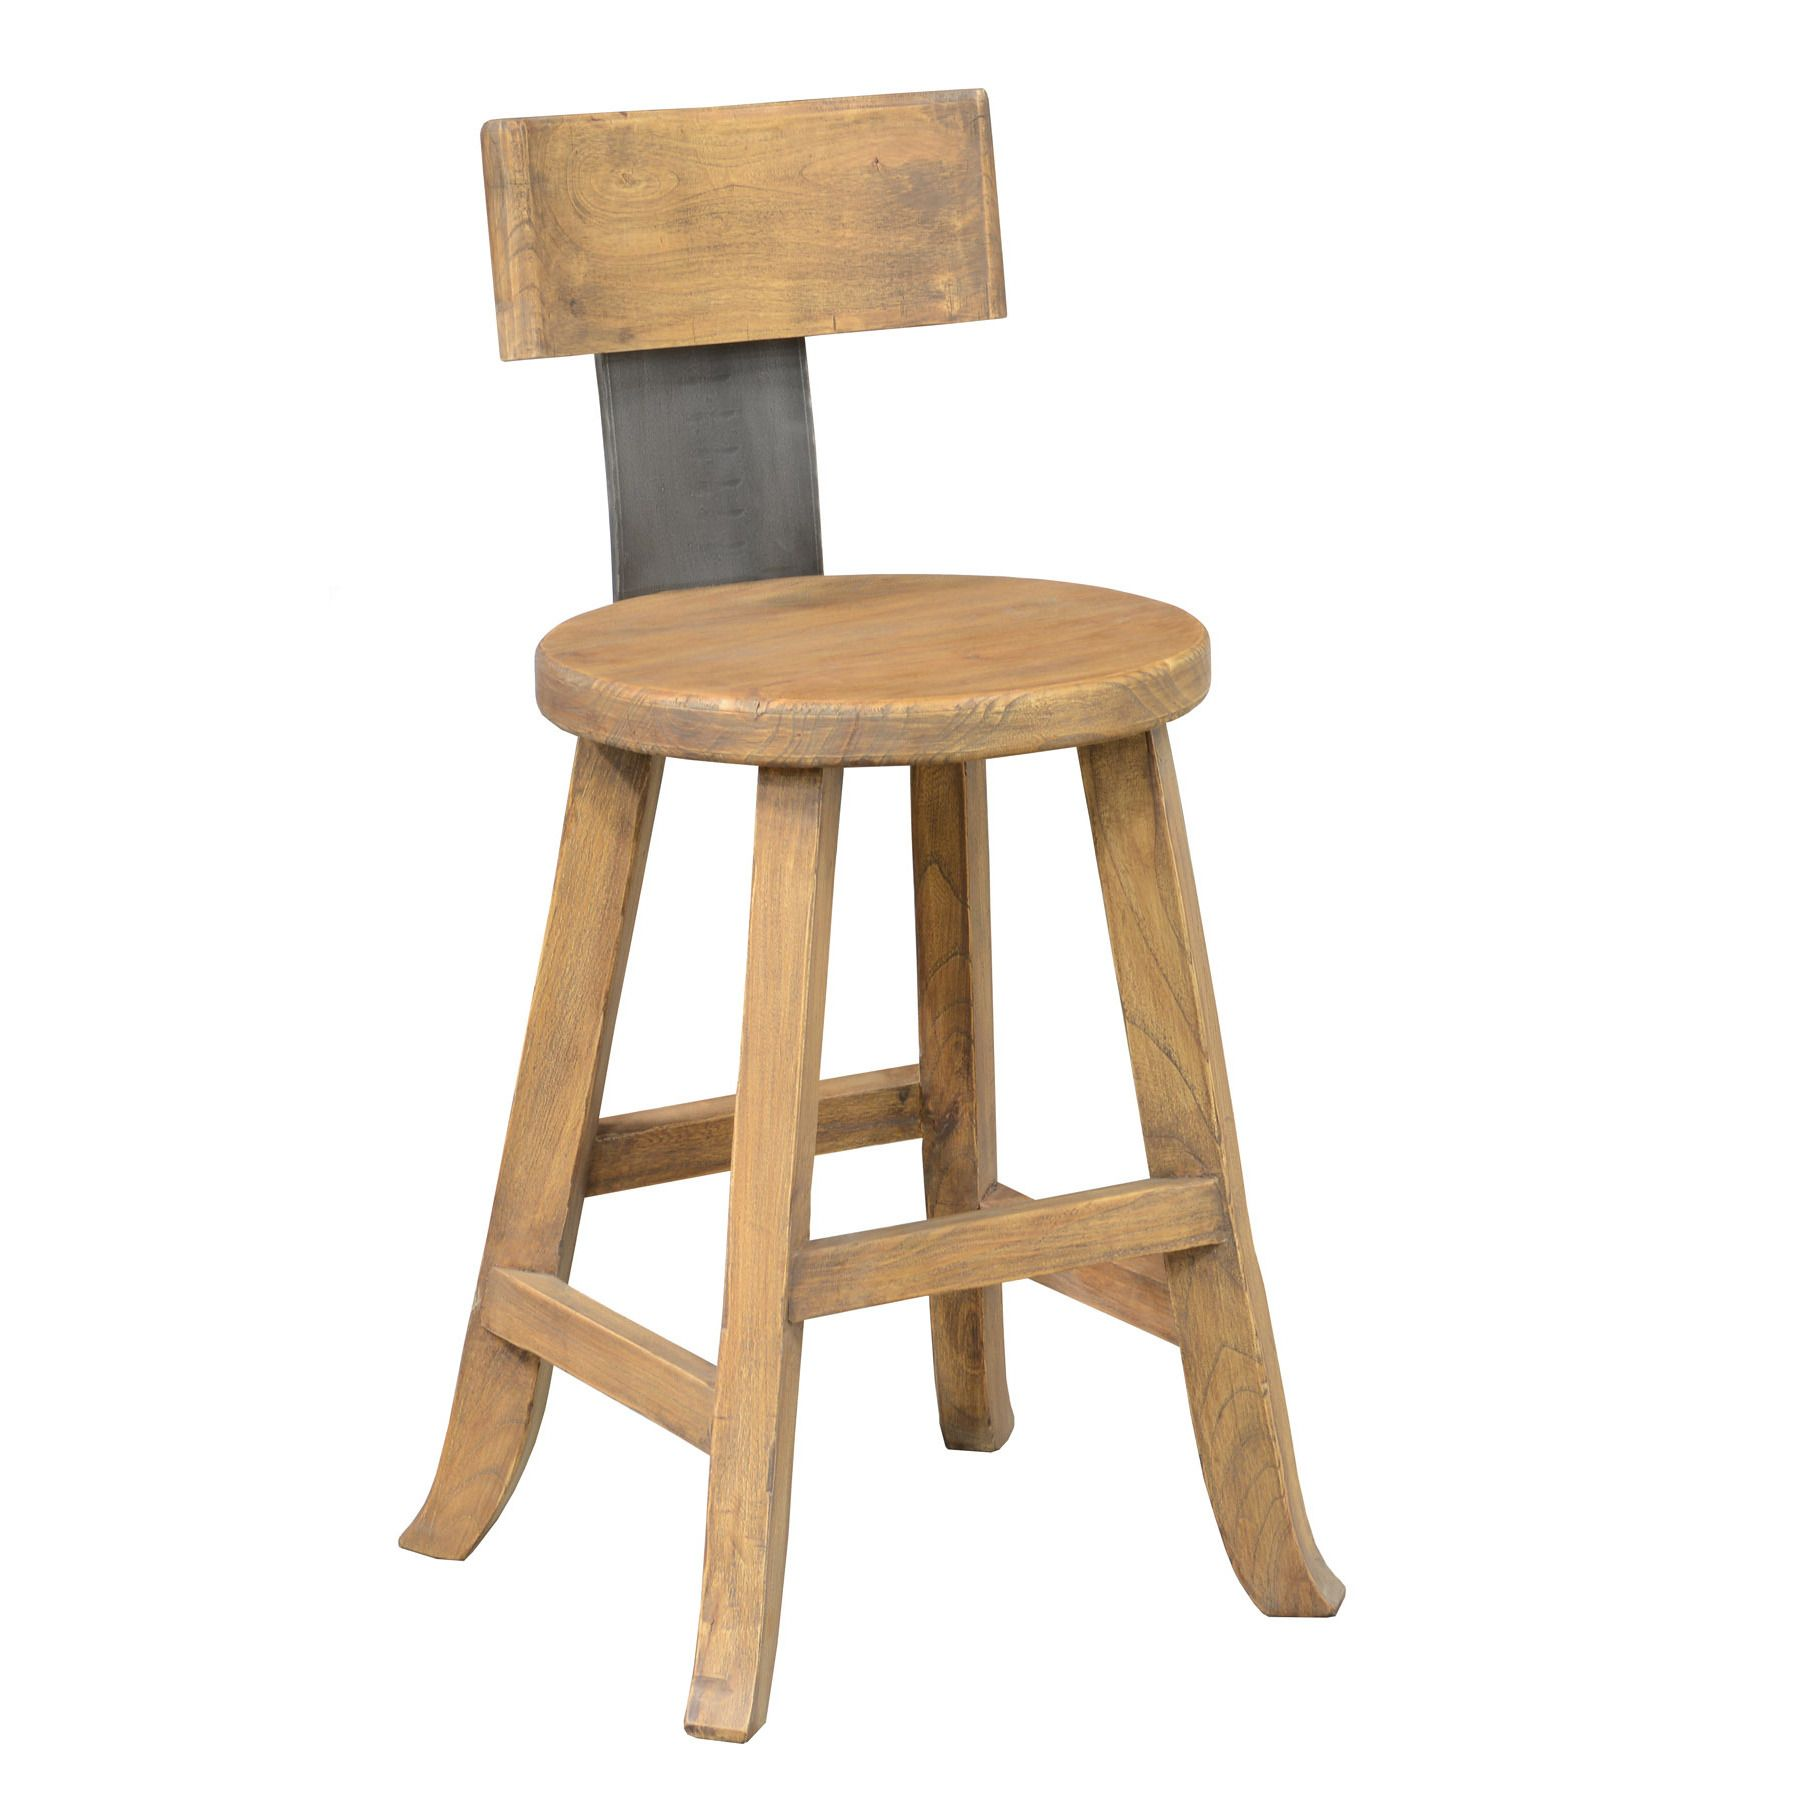 Rustic Stools Kitchens Kosas Home Foust Reclaimed Pine 24 Inch Counter Stool